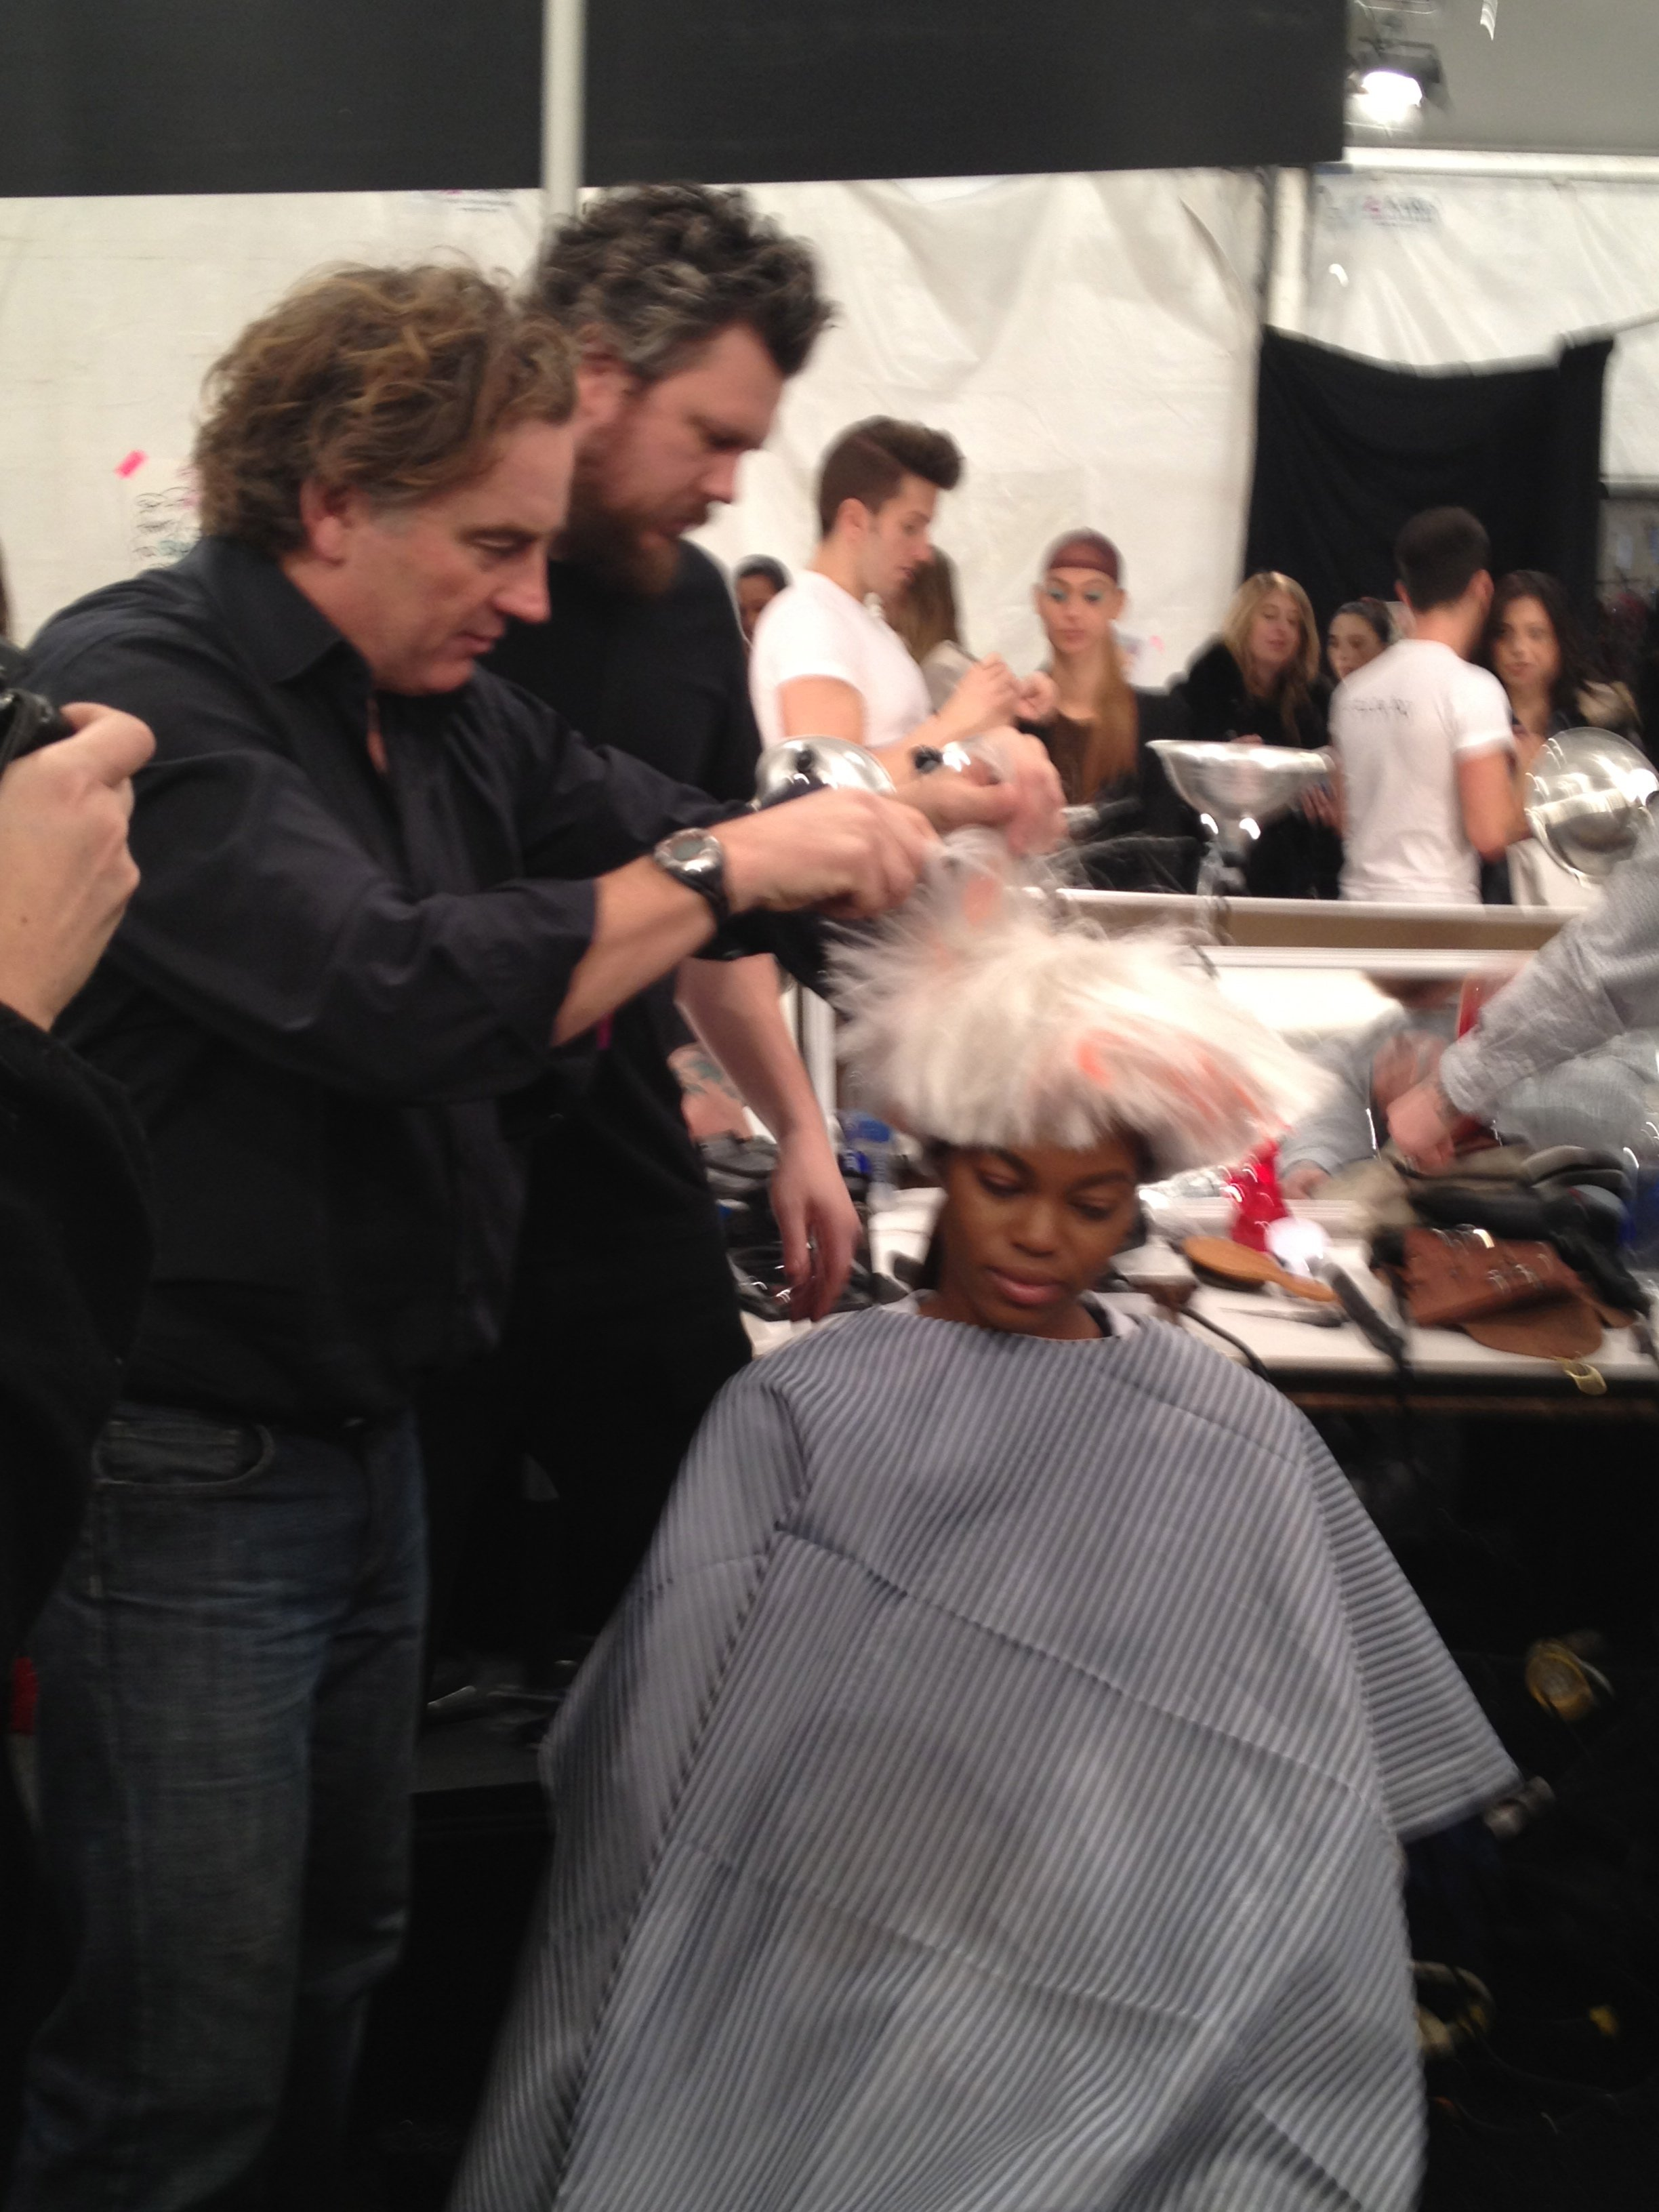 Rodney Cutler adds texture to wig.